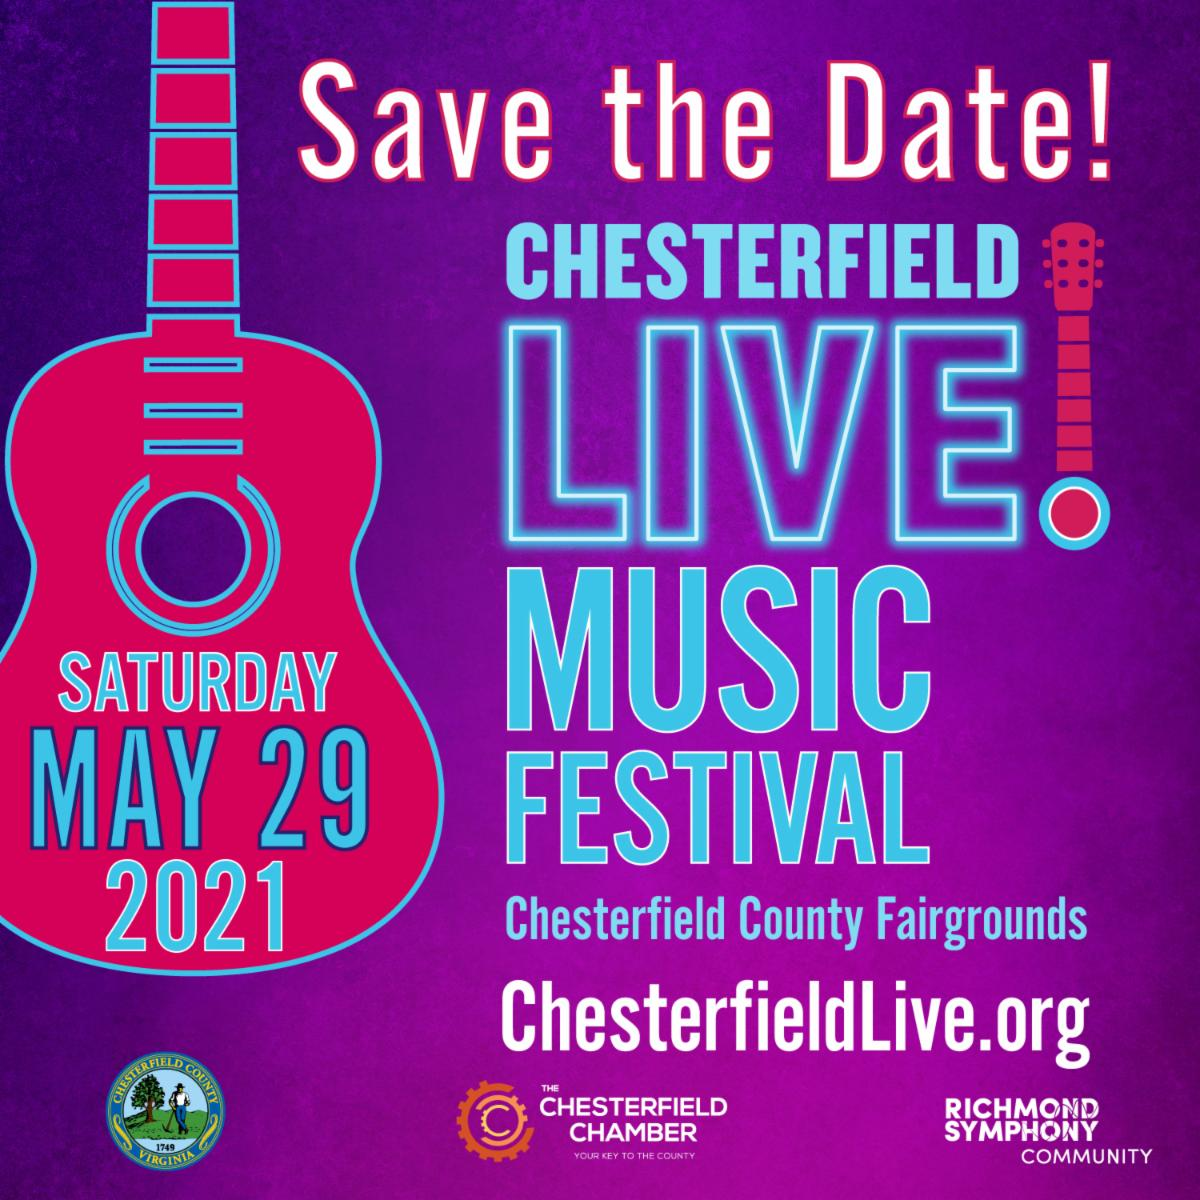 CfieldLive2021 - Social Media Square STD - Save teh Date! Chesterfield LIVE! Music Festival - Saturday, May 29, 2021 - Chesterfield County Fairgrounds - ChesterfieldLive.org